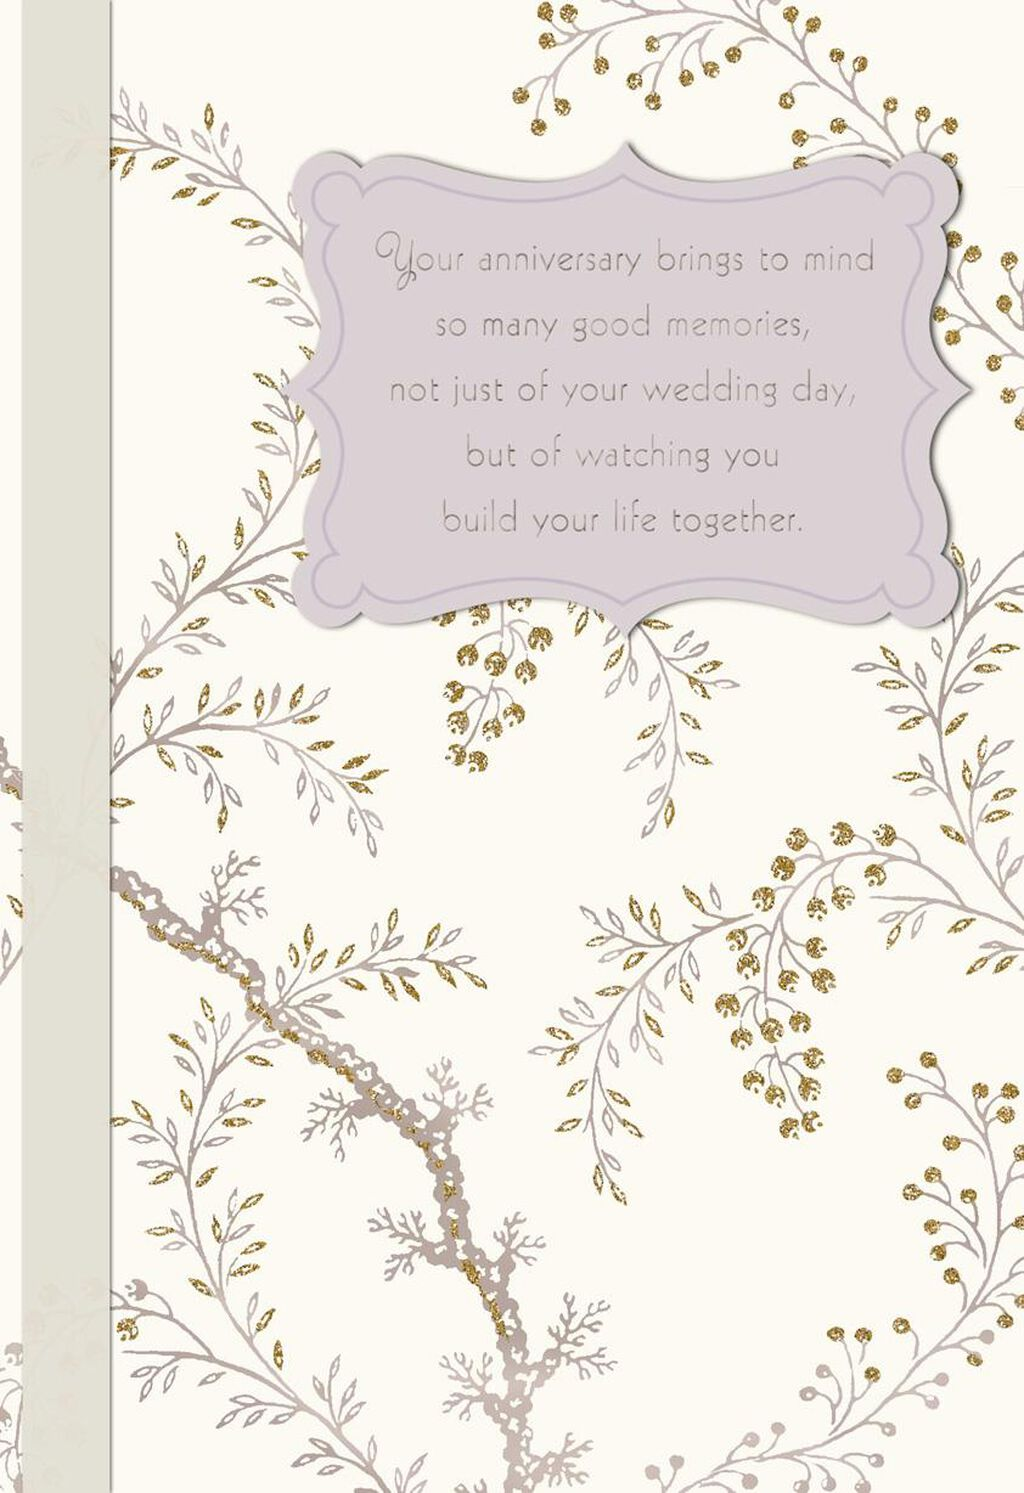 Flowering Branches Anniversary Card For Son And Daughter In Law